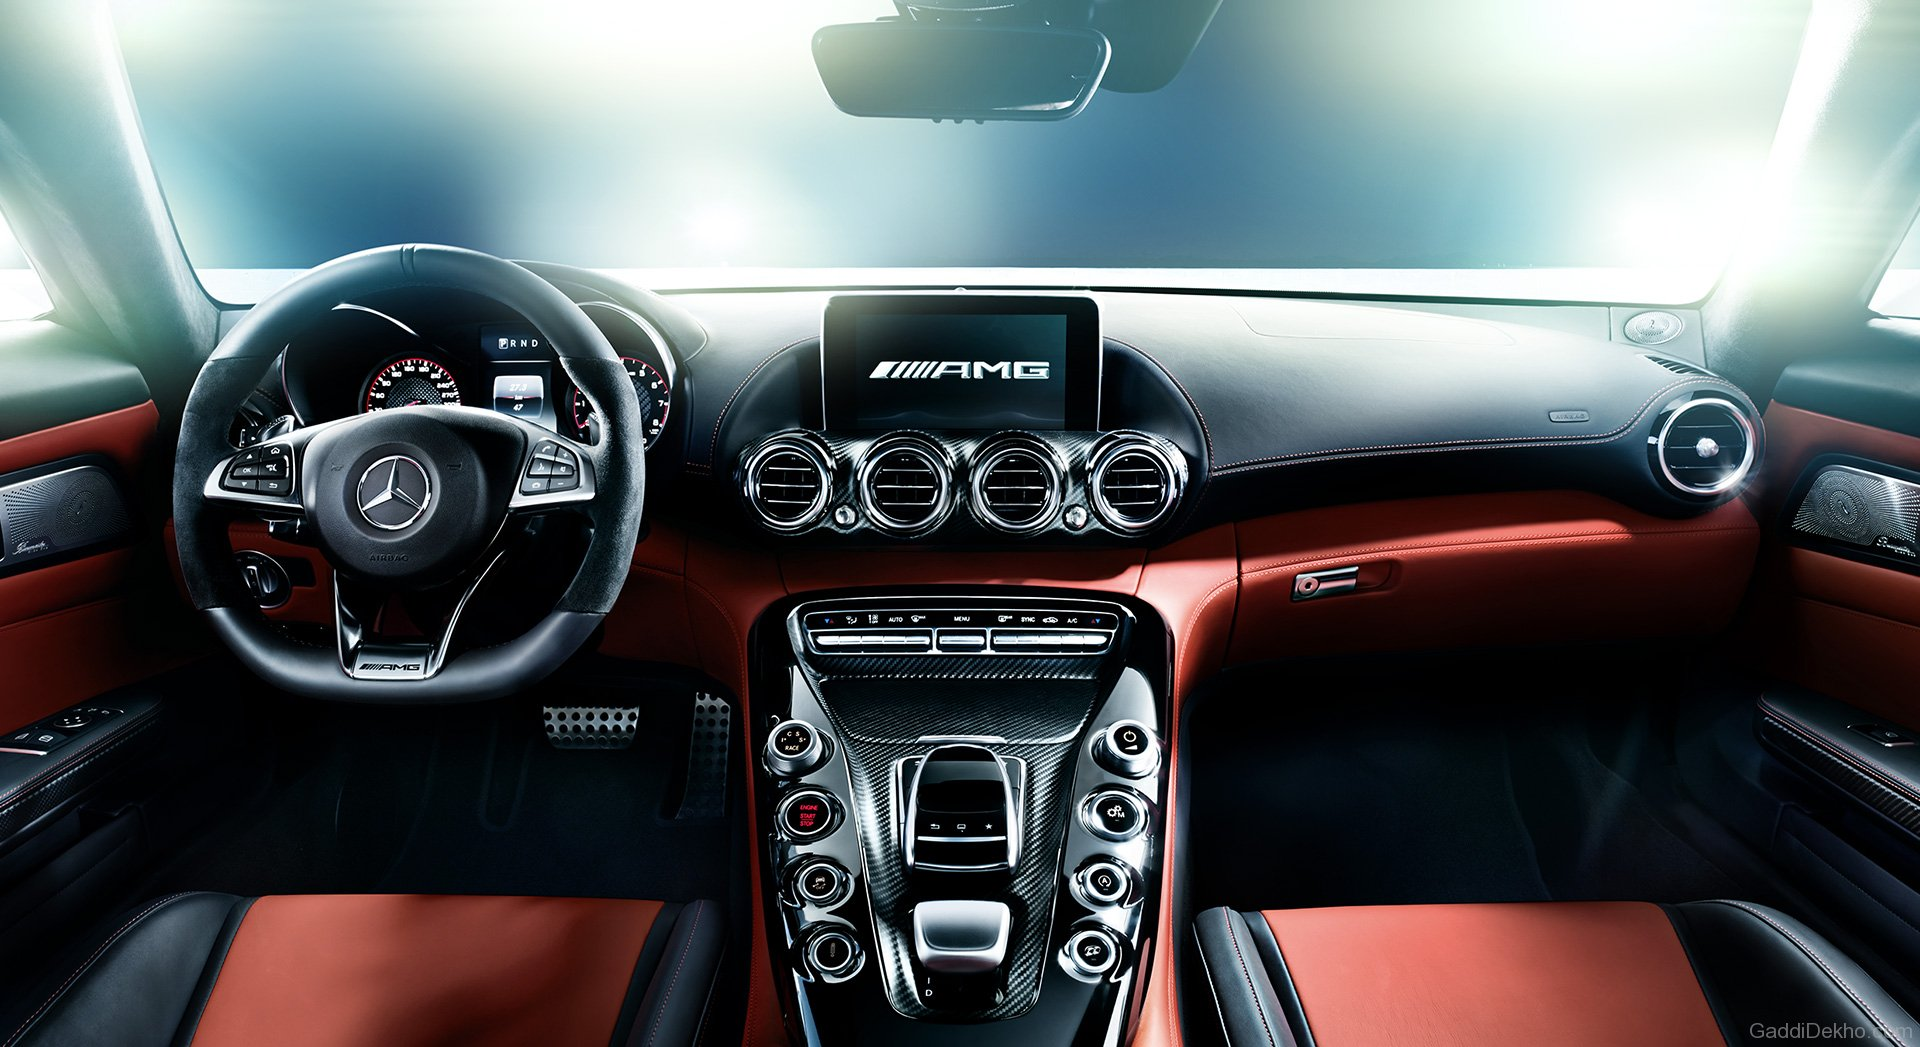 Cockpit Hd Wallpaper Mercedes Benz Amg Gt Car Pictures Images Gaddidekho Com